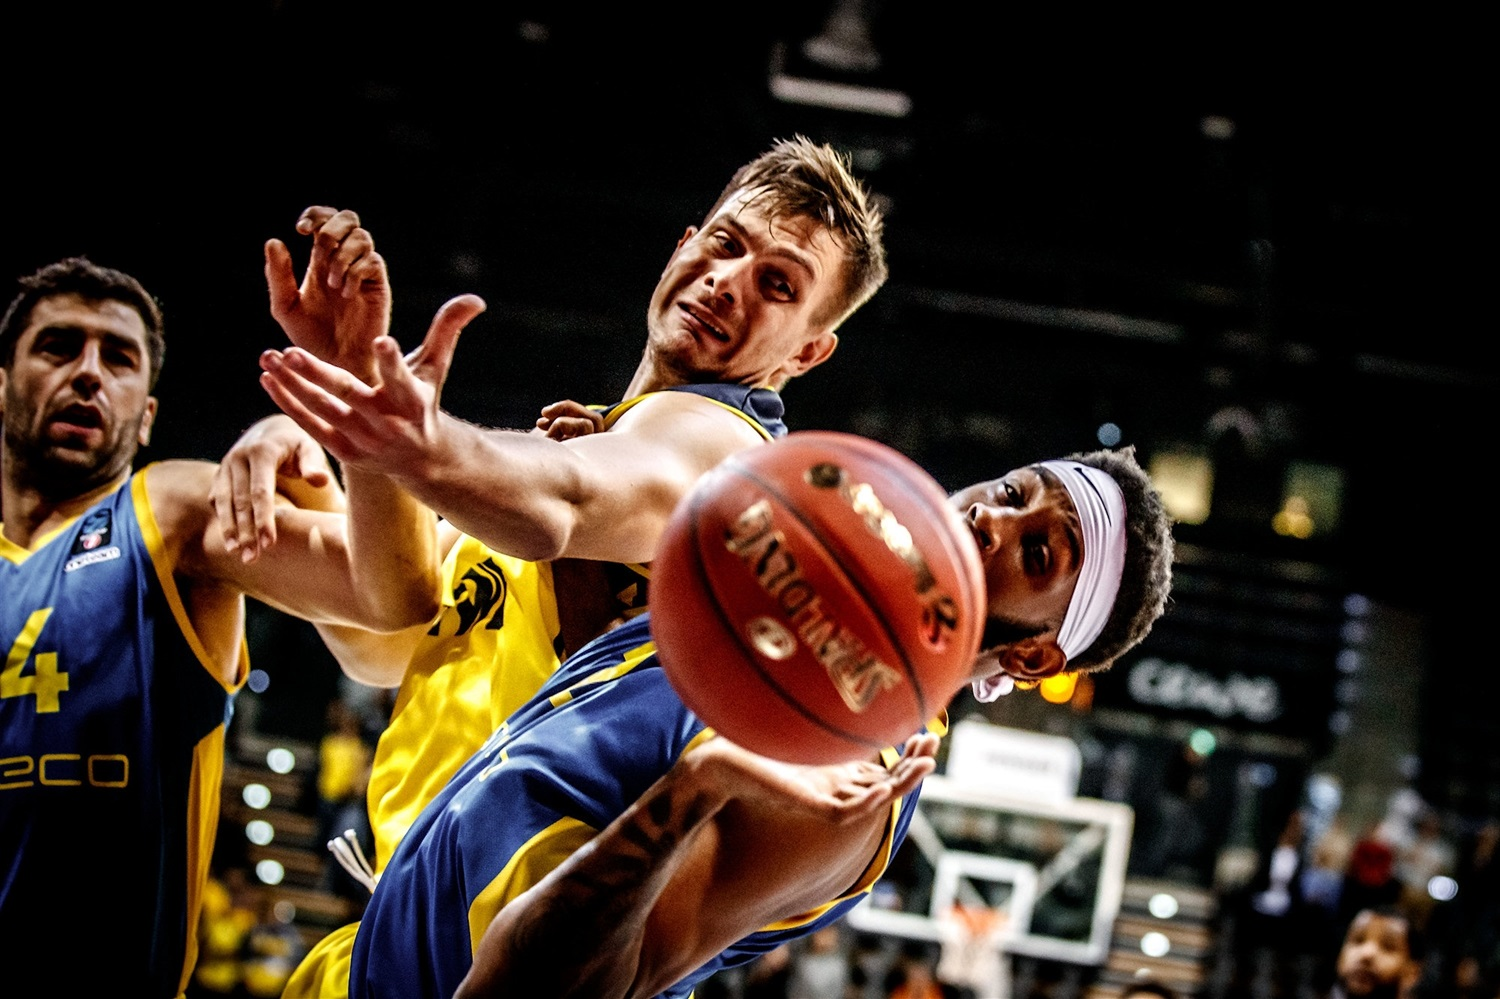 Rasid Mahalbasic - EWE Baskets Oldenburg (photo Ulf Duda - fotoduda.de) - EC19